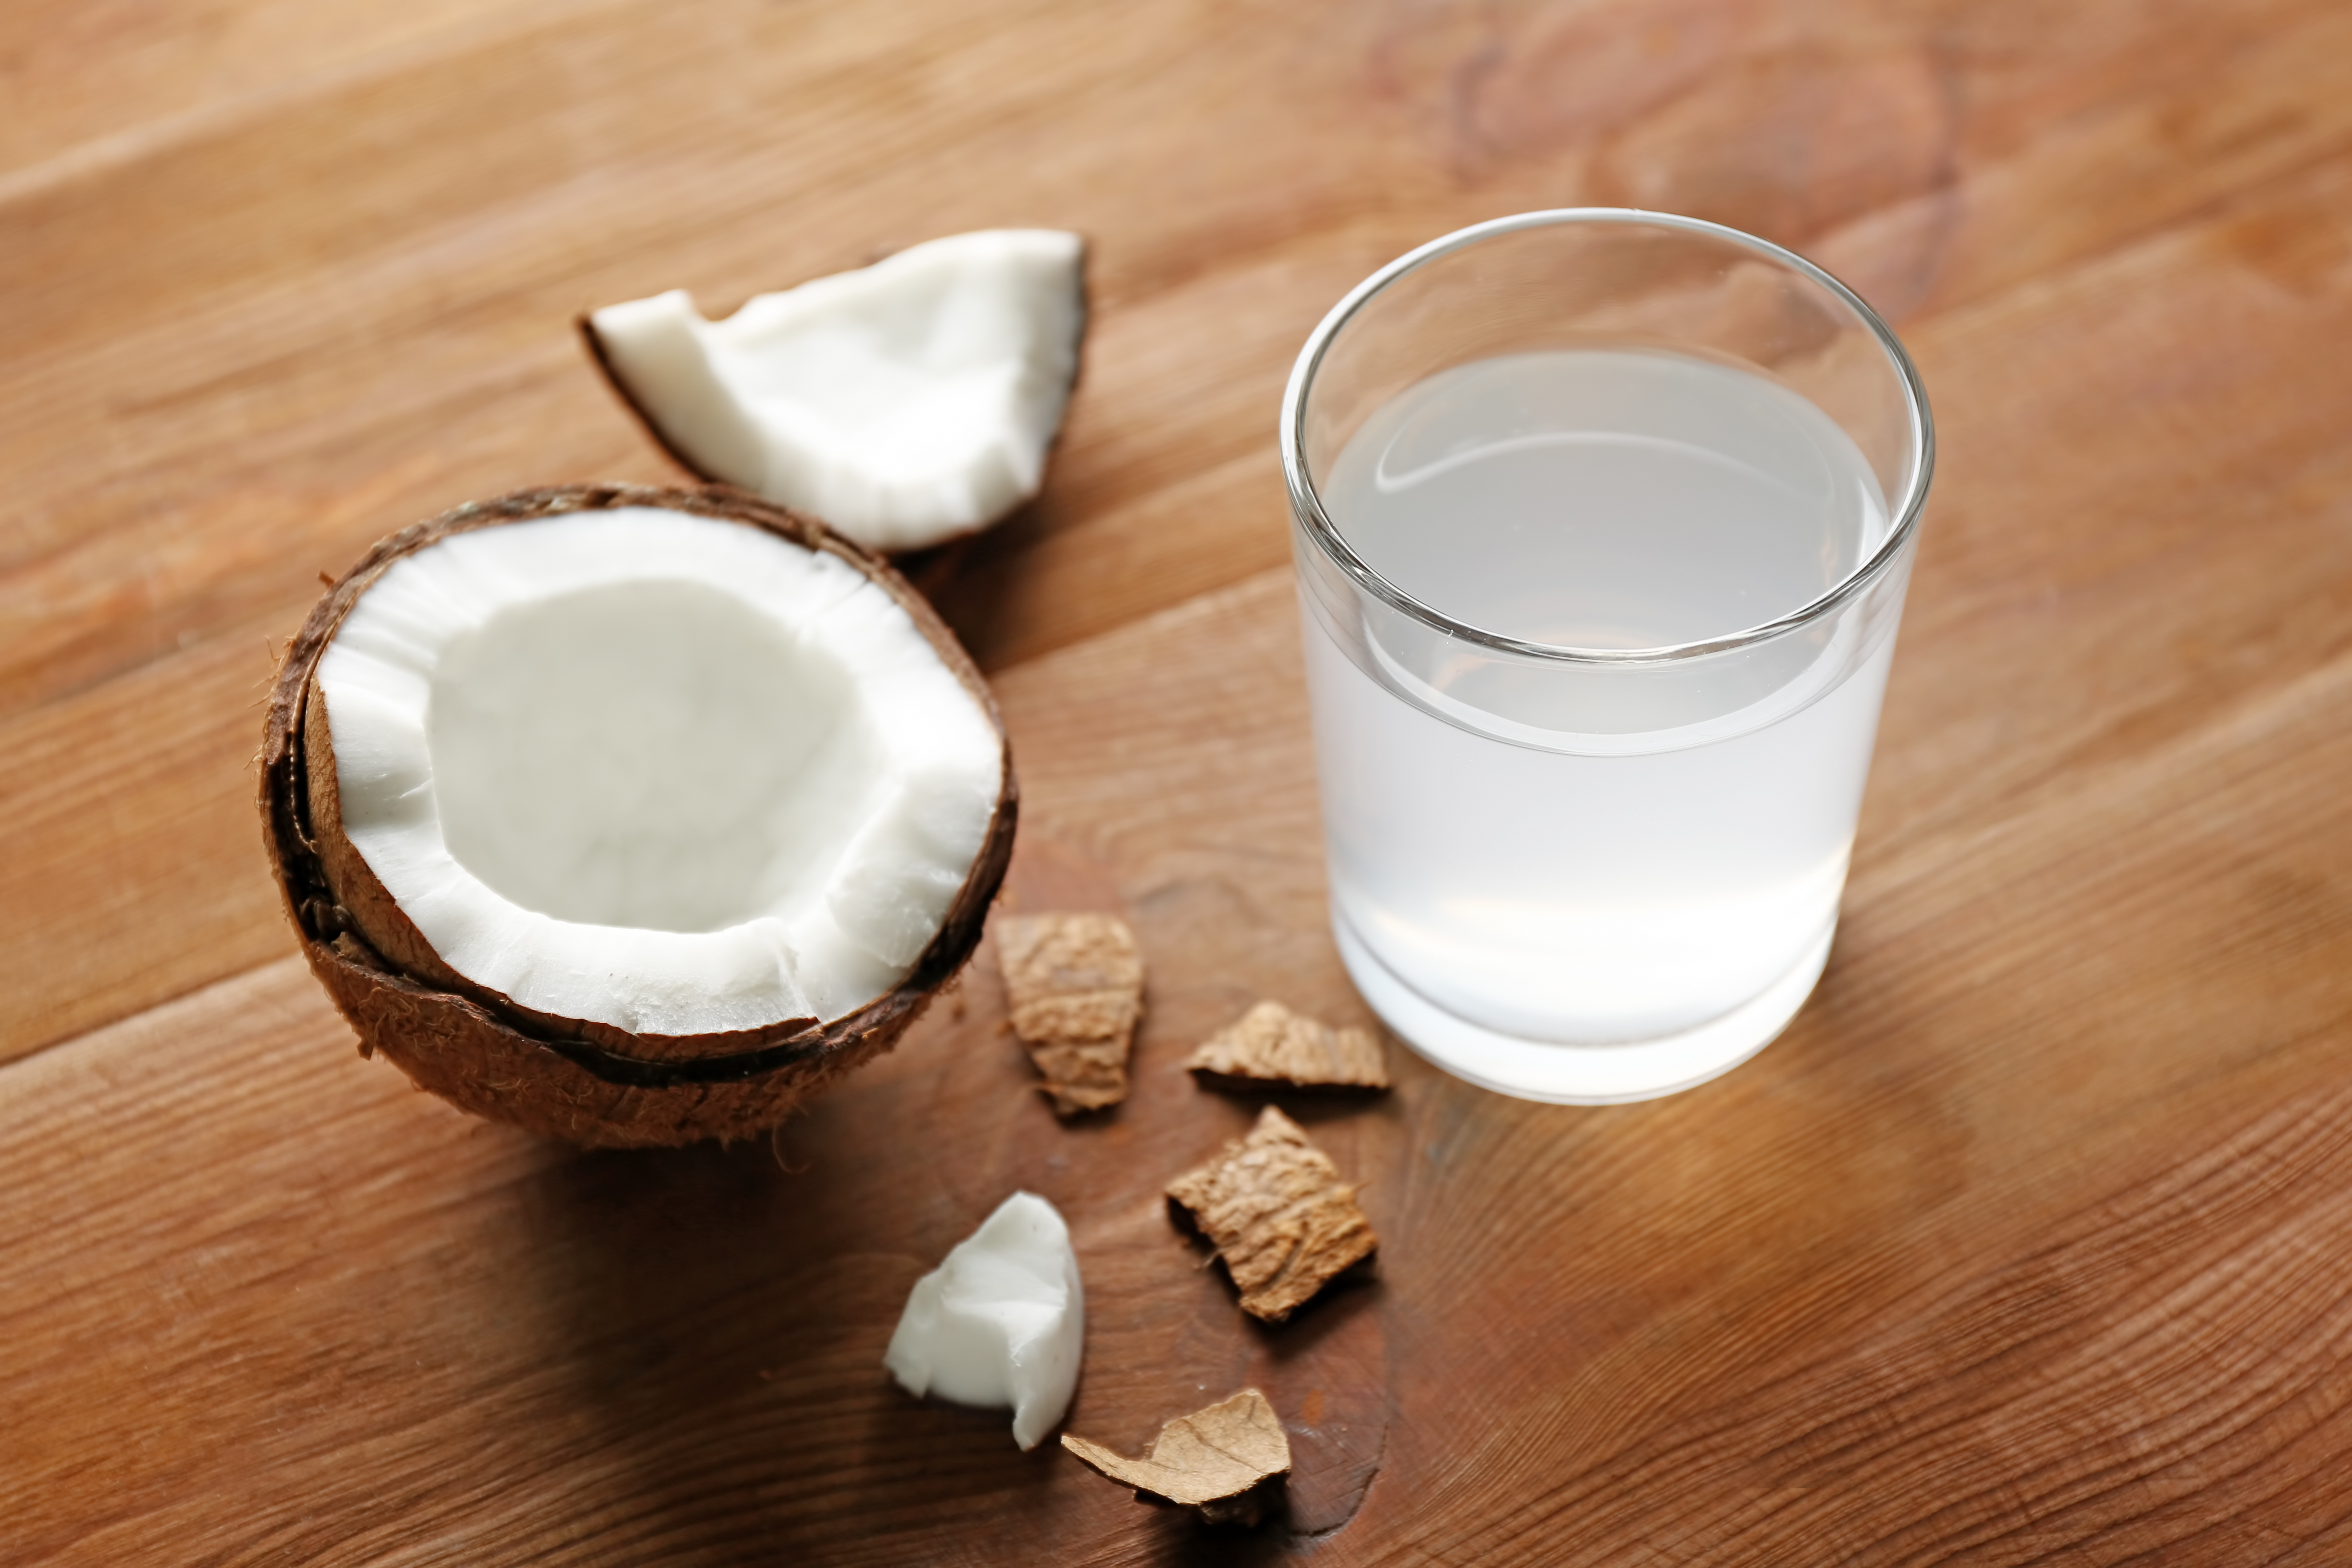 electrolyte minerals in coconut water | healthy eating | sf gate